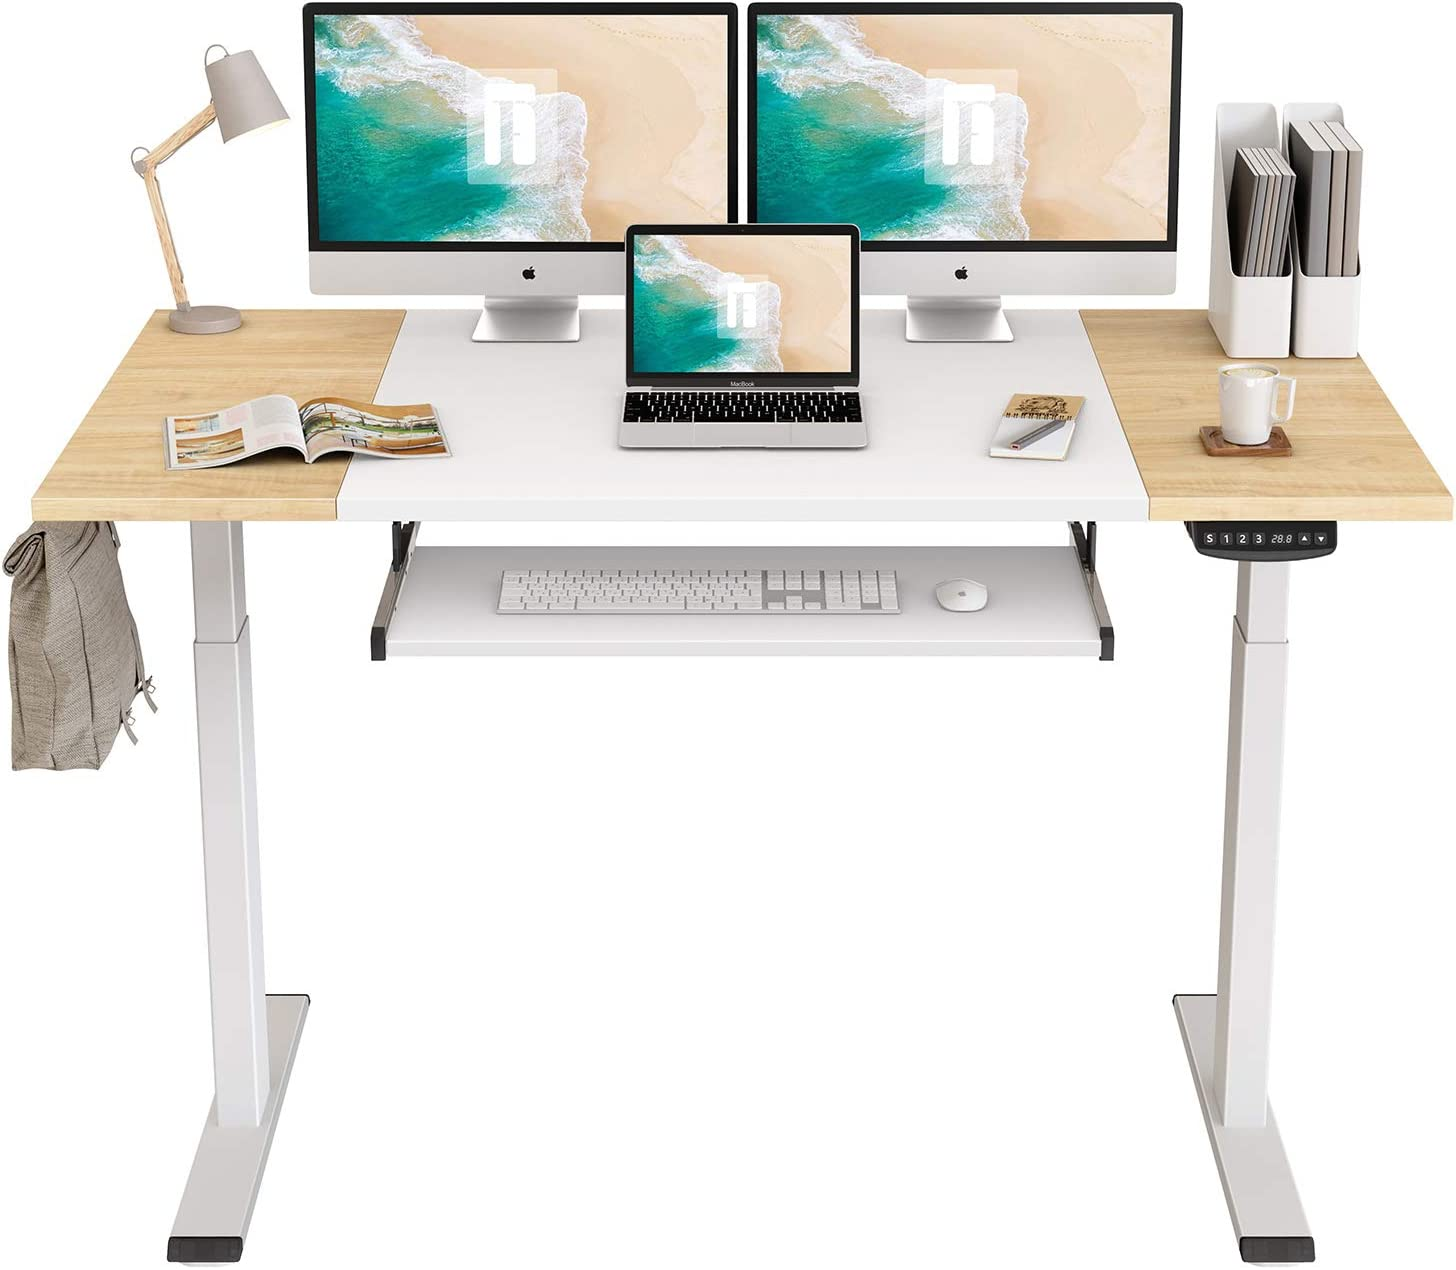 48 x 24 Inch Full Sit Stand Home Office Table with Splice Board White Frame//White and Natural Top FEZIBO Dual Motor Height Adjustable Electric Standing Desk